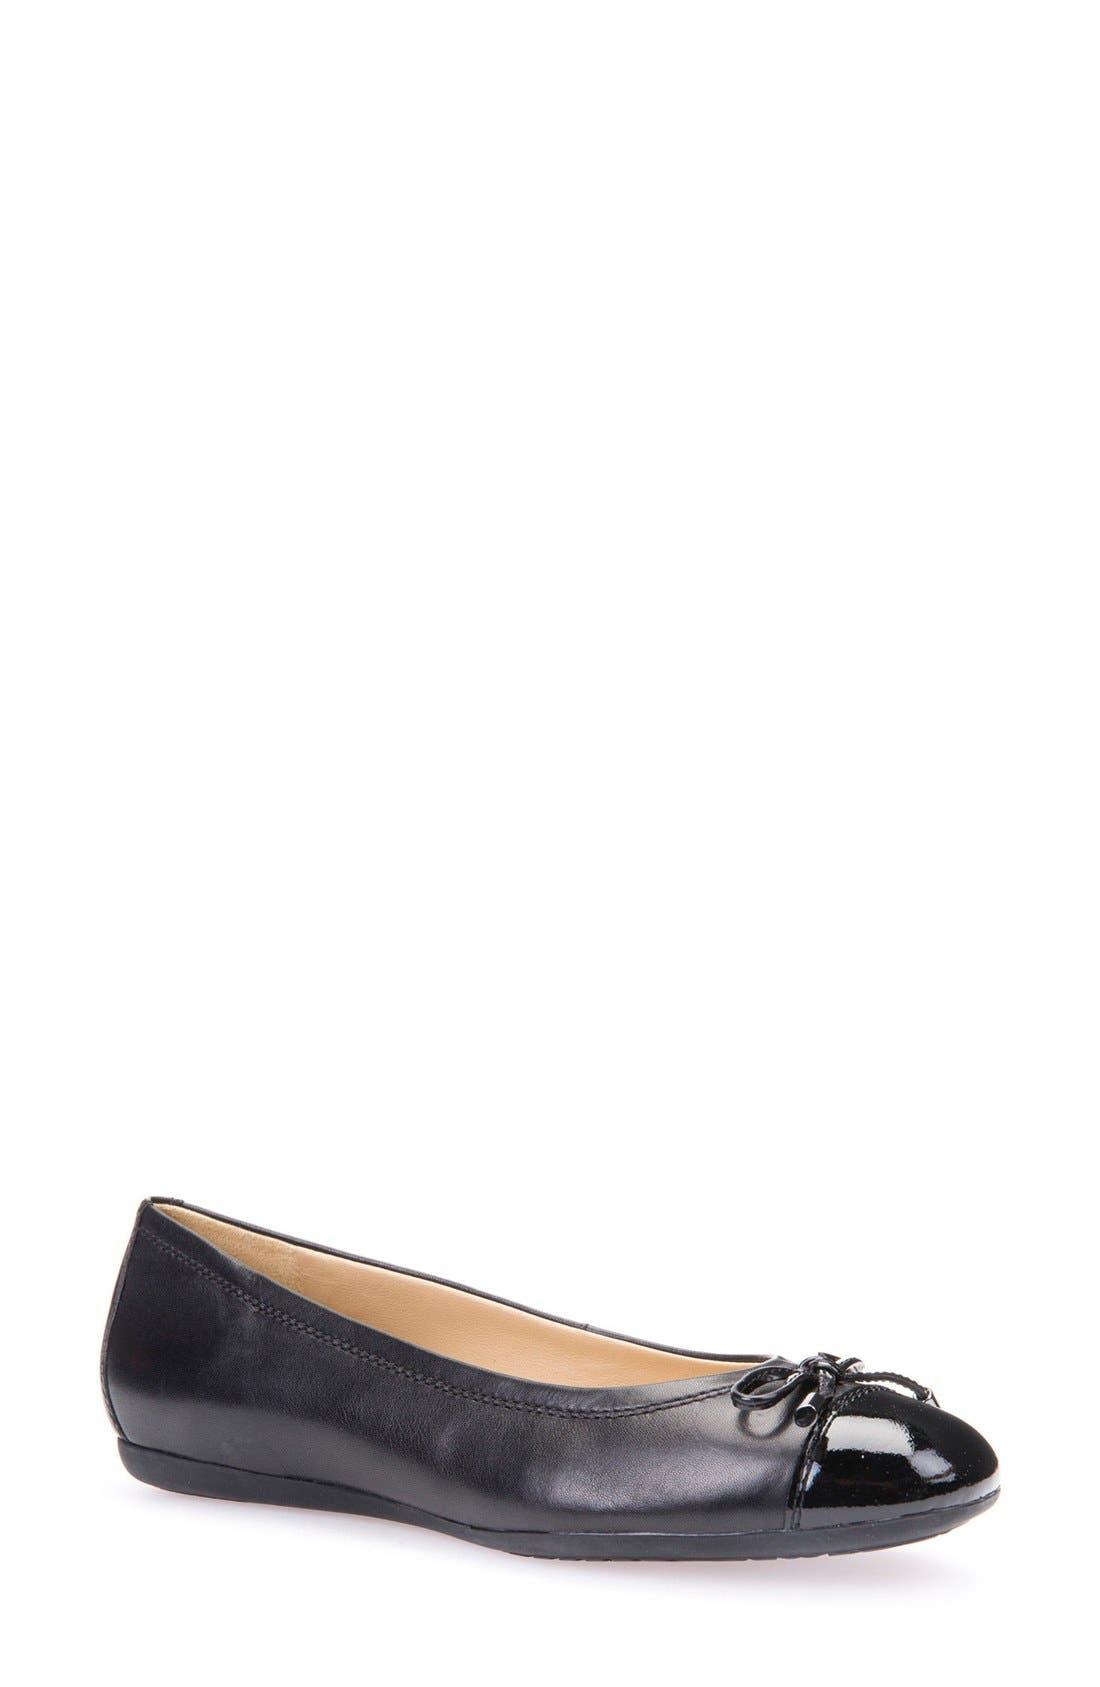 'Lola 16' Cap Toe Ballet Flat,                         Main,                         color,